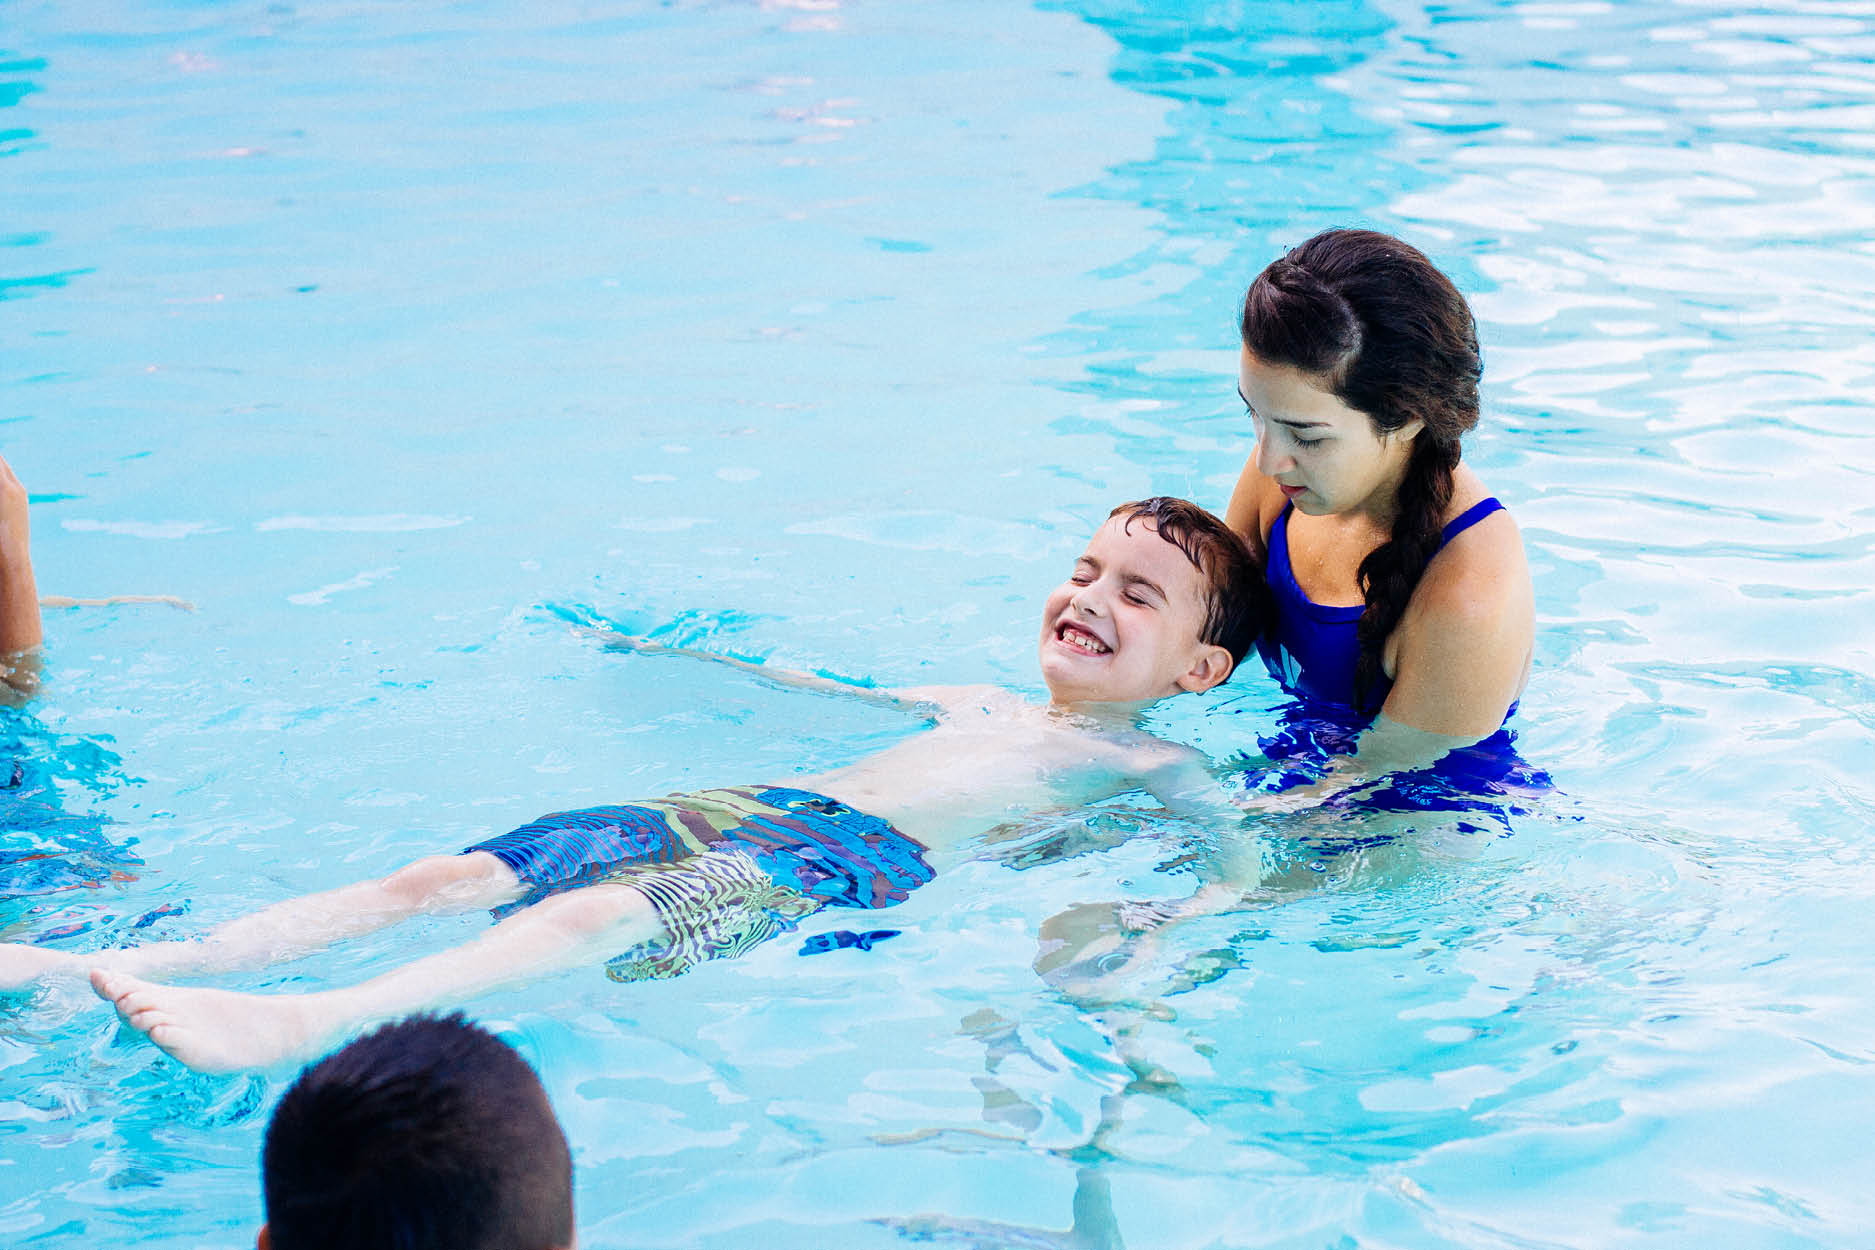 Lifeguard assisting male child with back floating during swim lesson